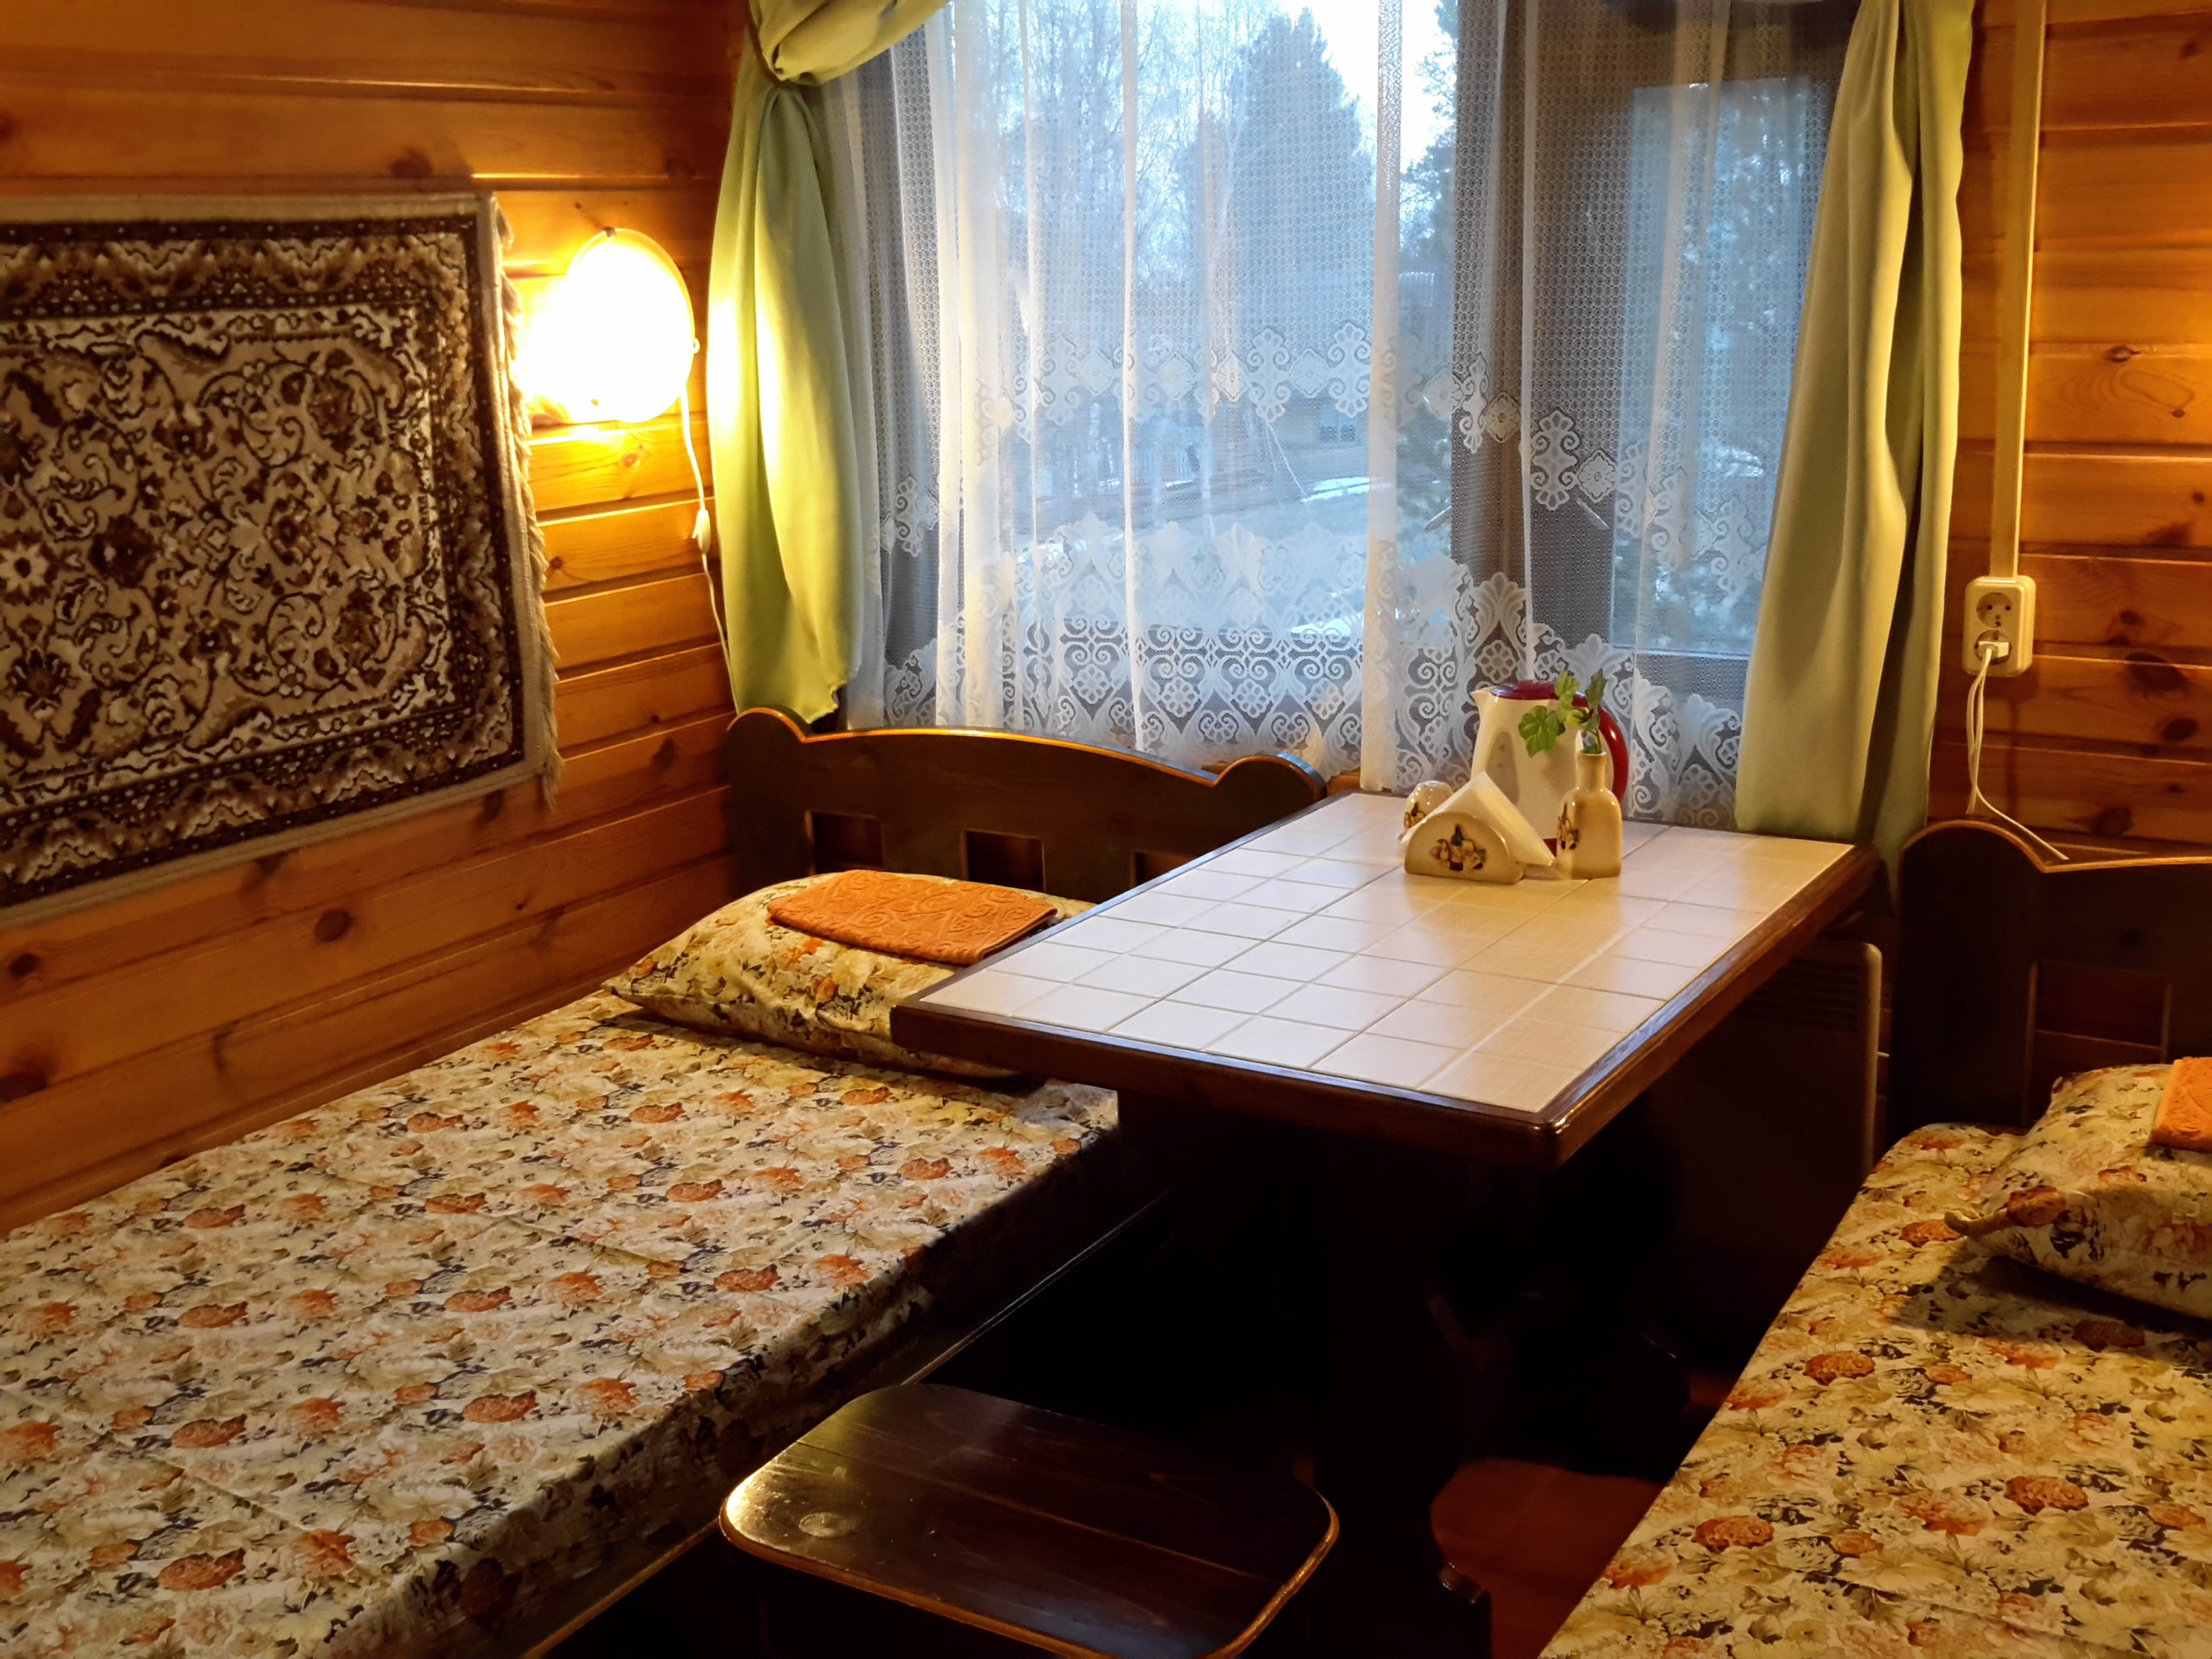 Room 3 View 1 - House on Lake Baikal